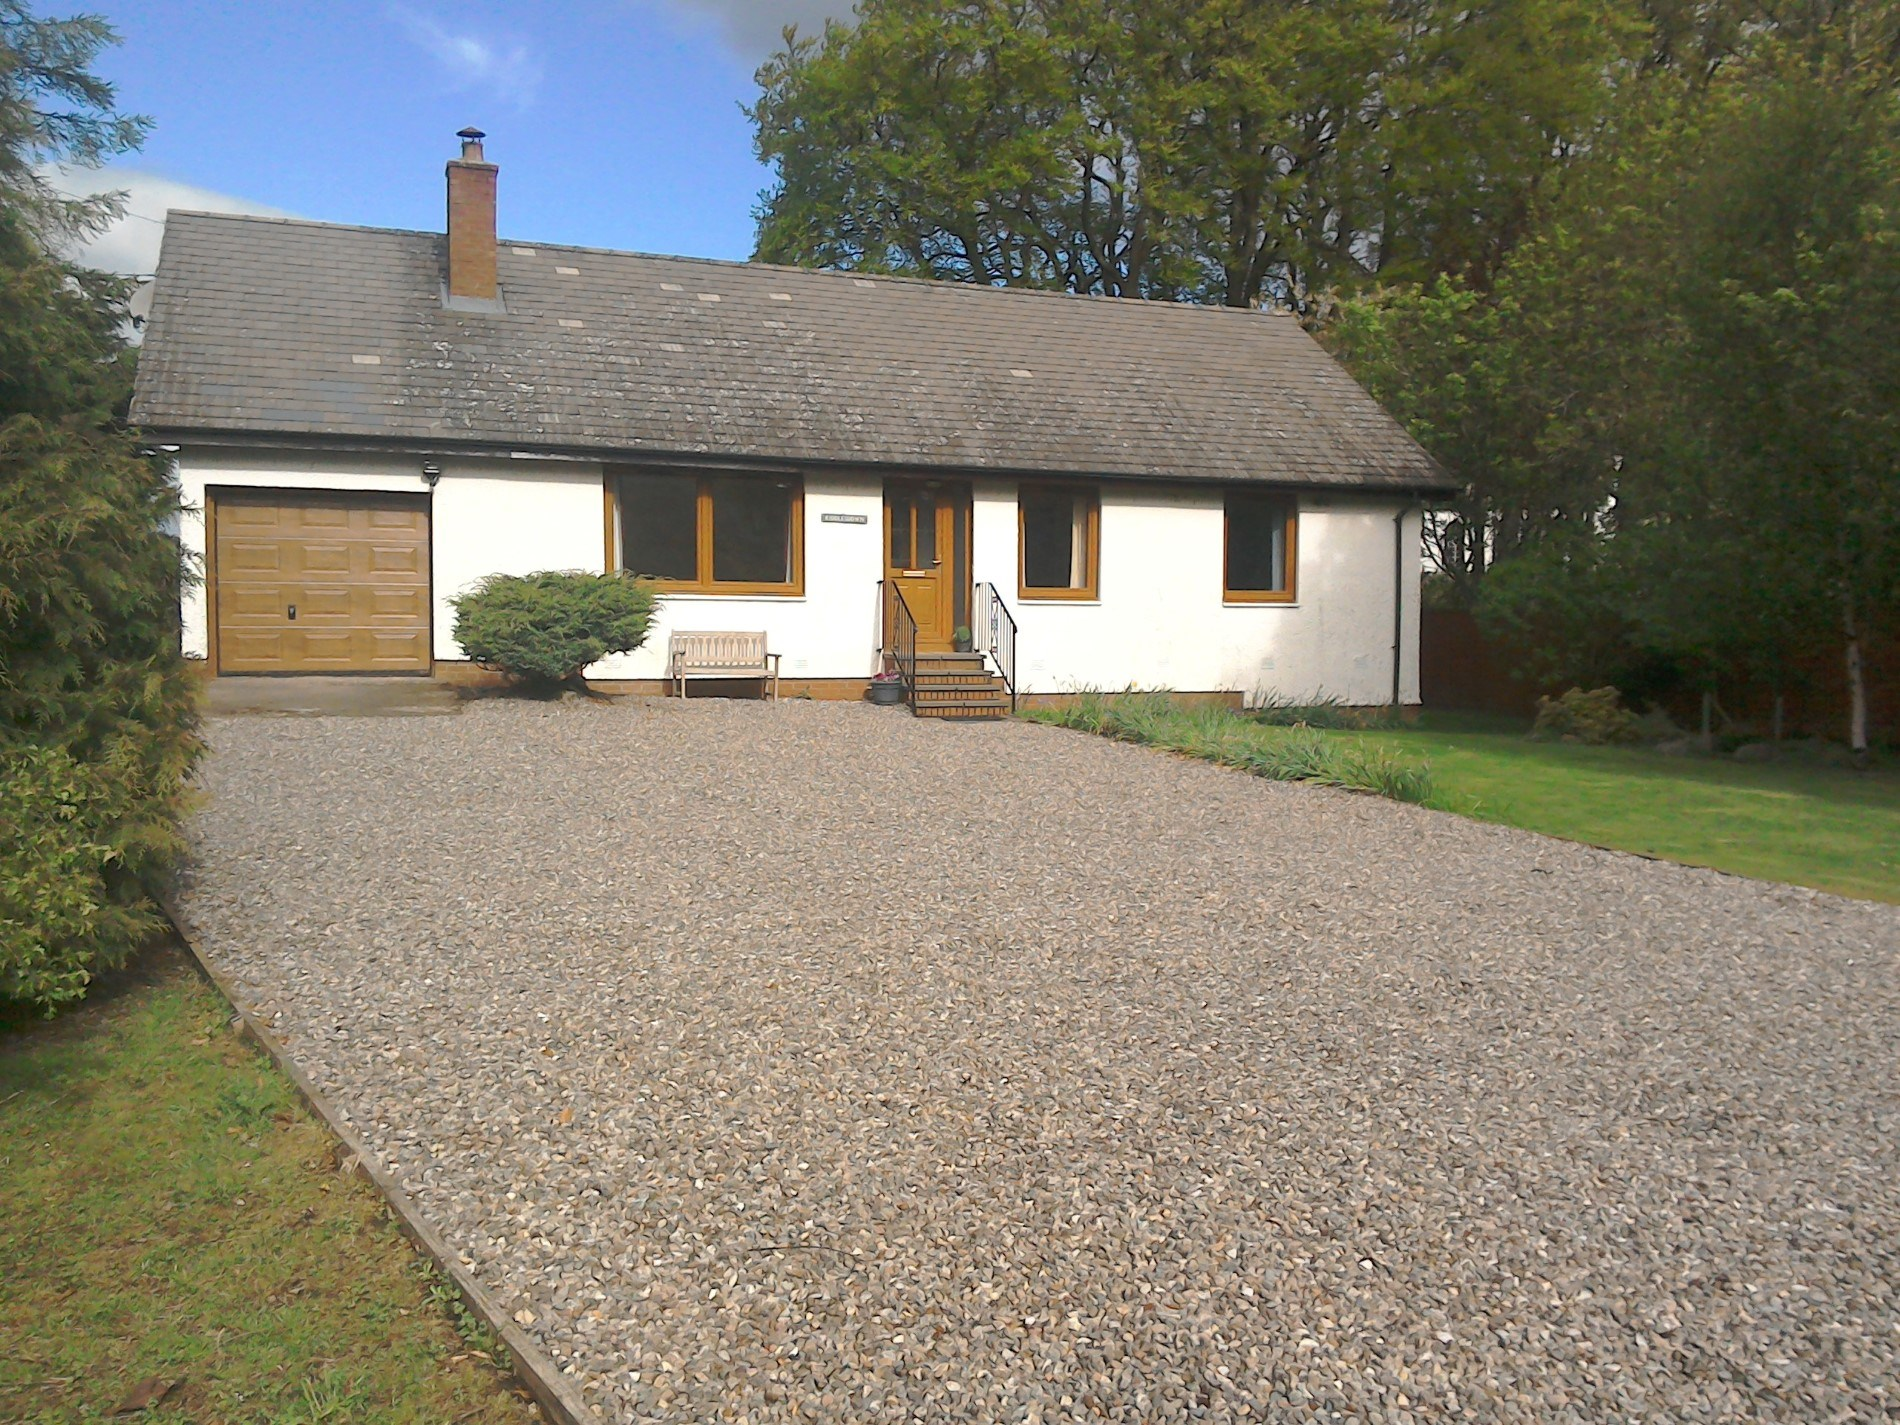 3 Bedroom Cottage in Dunkeld, Perthshire, Angus & Fife